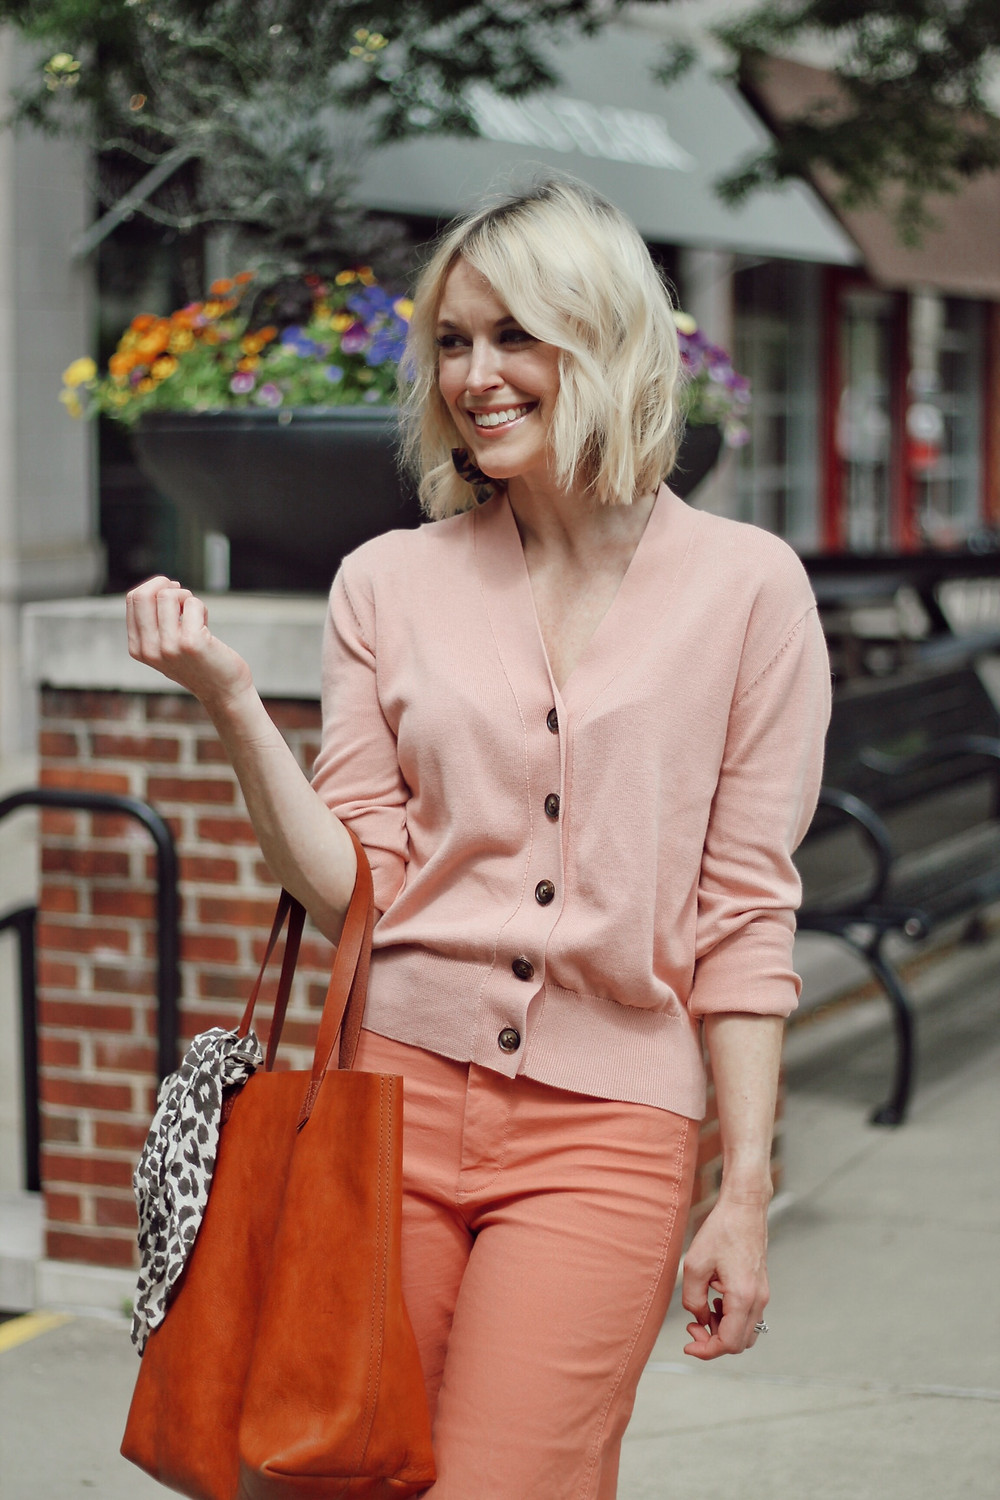 Woman wears spring outfit of pink cardigan and pink cropped pants.